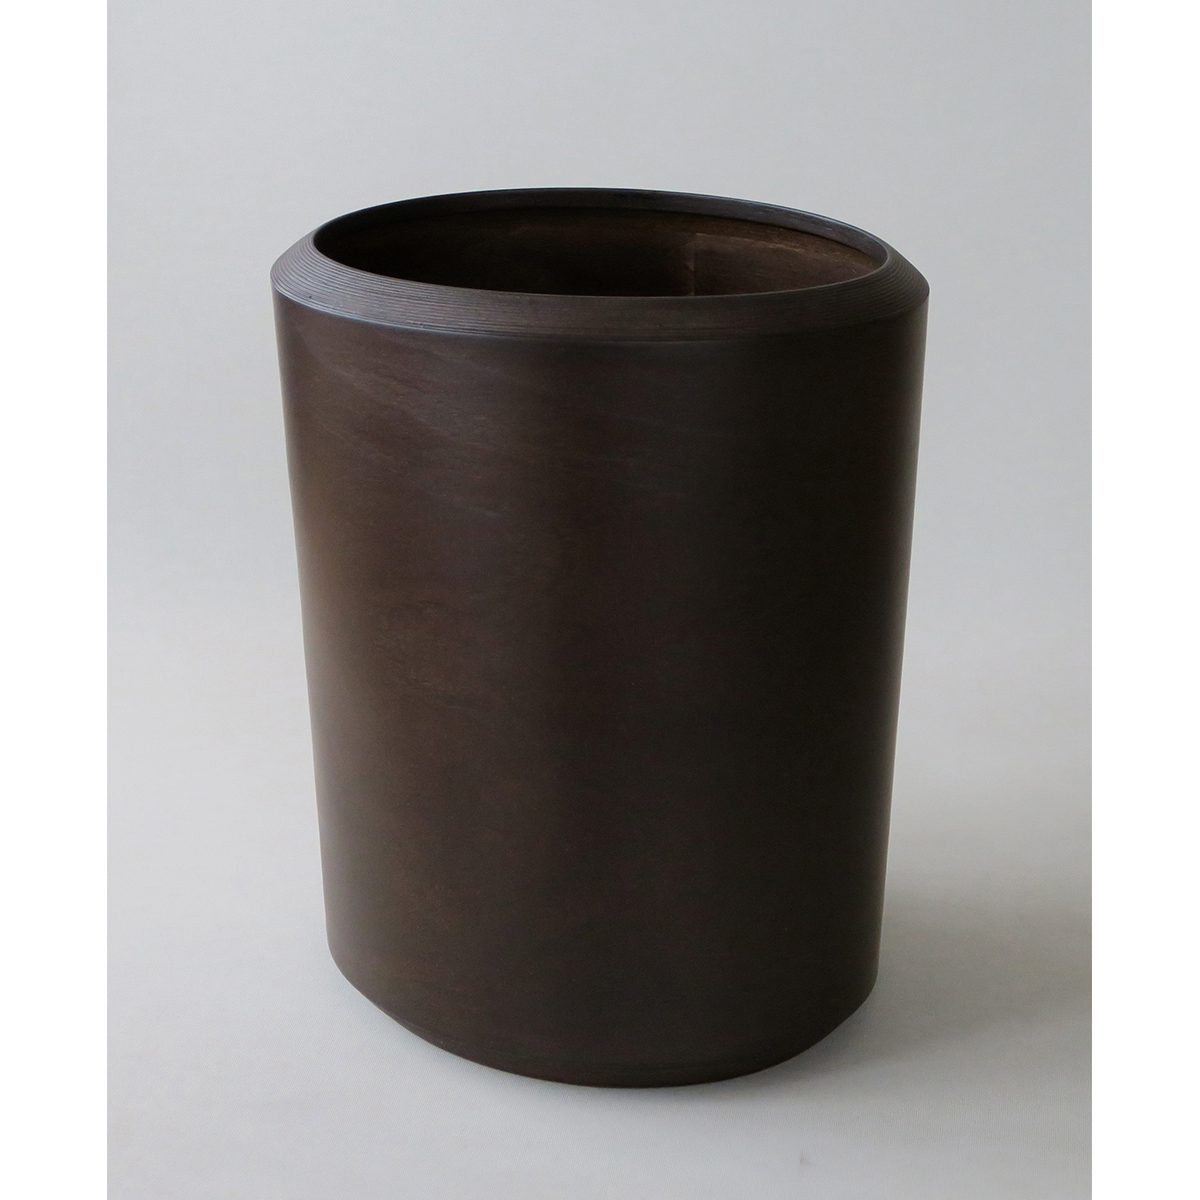 ブナコ INTERIOR GOODS DUST BIN IB-D8316 Dark brown /マルゲリータ